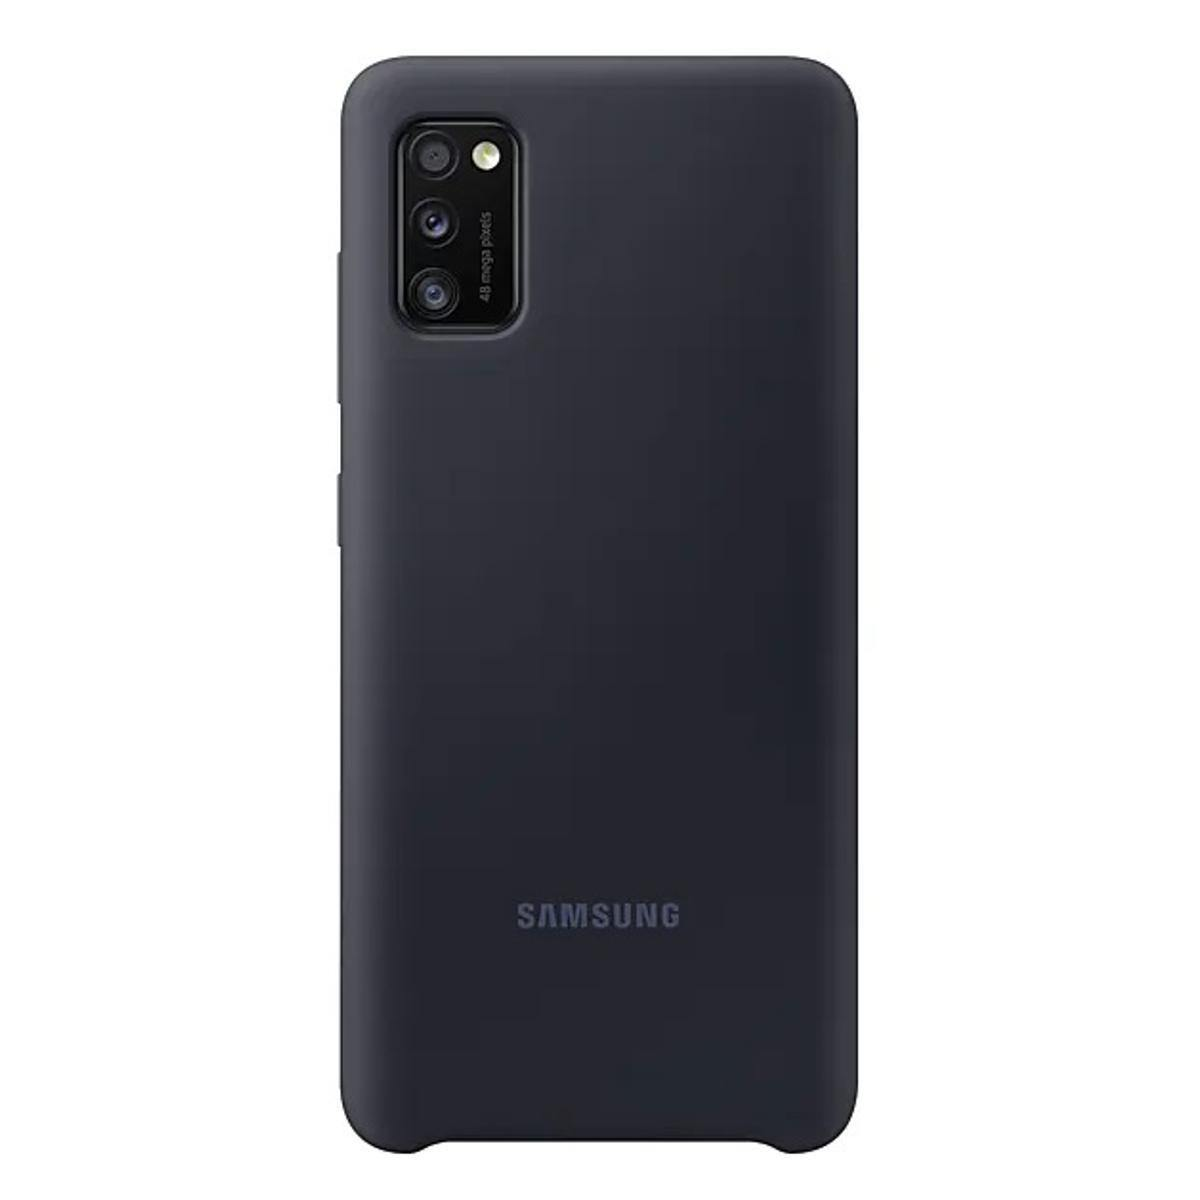 Official Samsung Galaxy A41 Silicone Cover Case Black EF-PA415TBEGEU